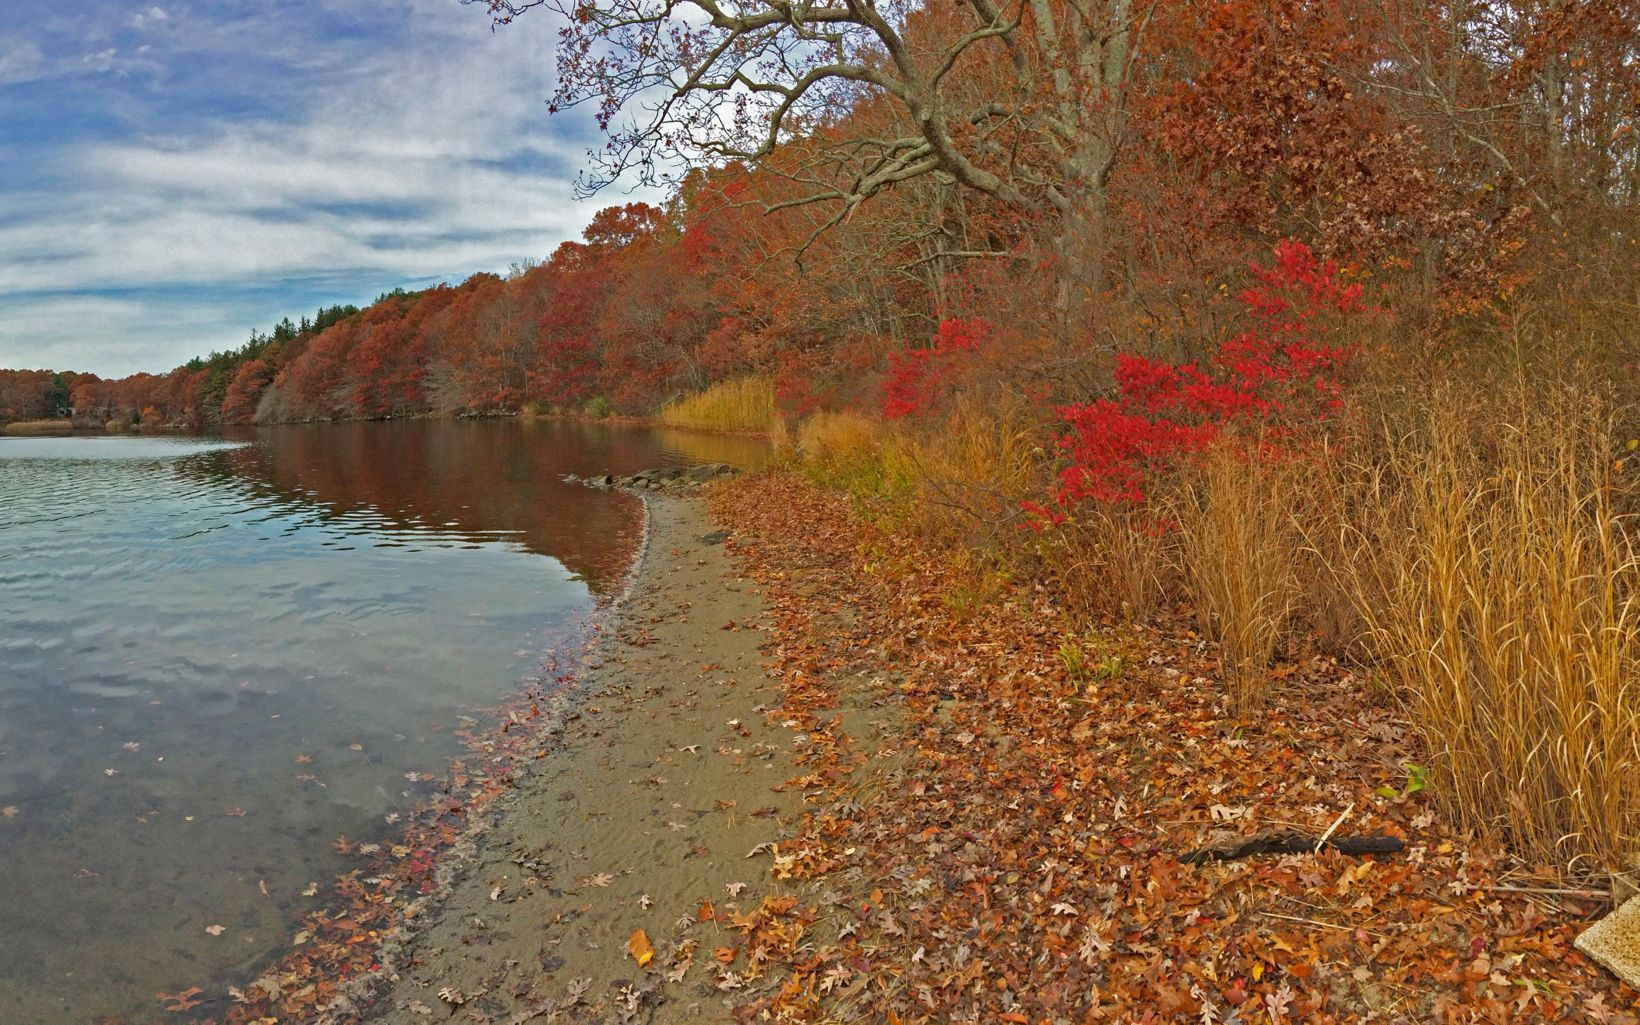 Standing on the shore of a coastal forest. Fall foliage turning red and gold contrasts with the calm surface of a tidal river.